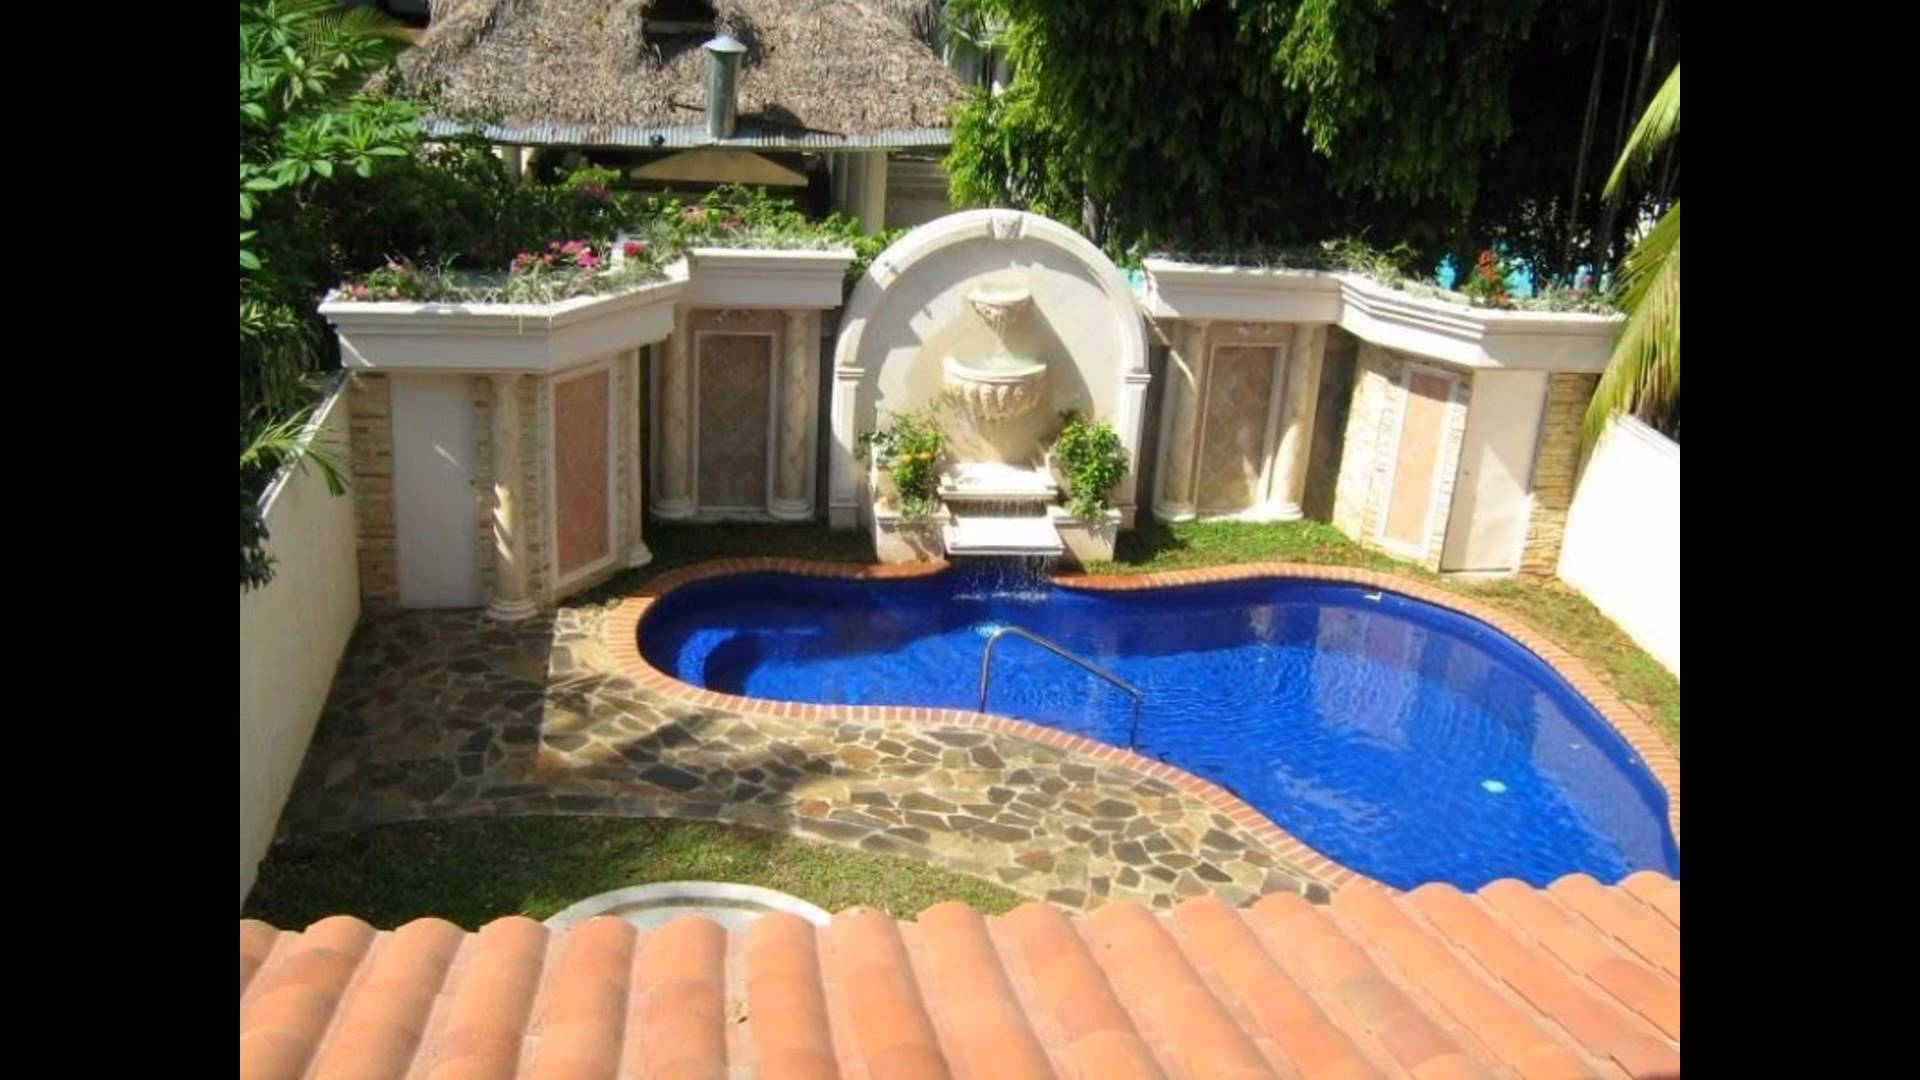 inground swimming pool designs for small backyards underground pools